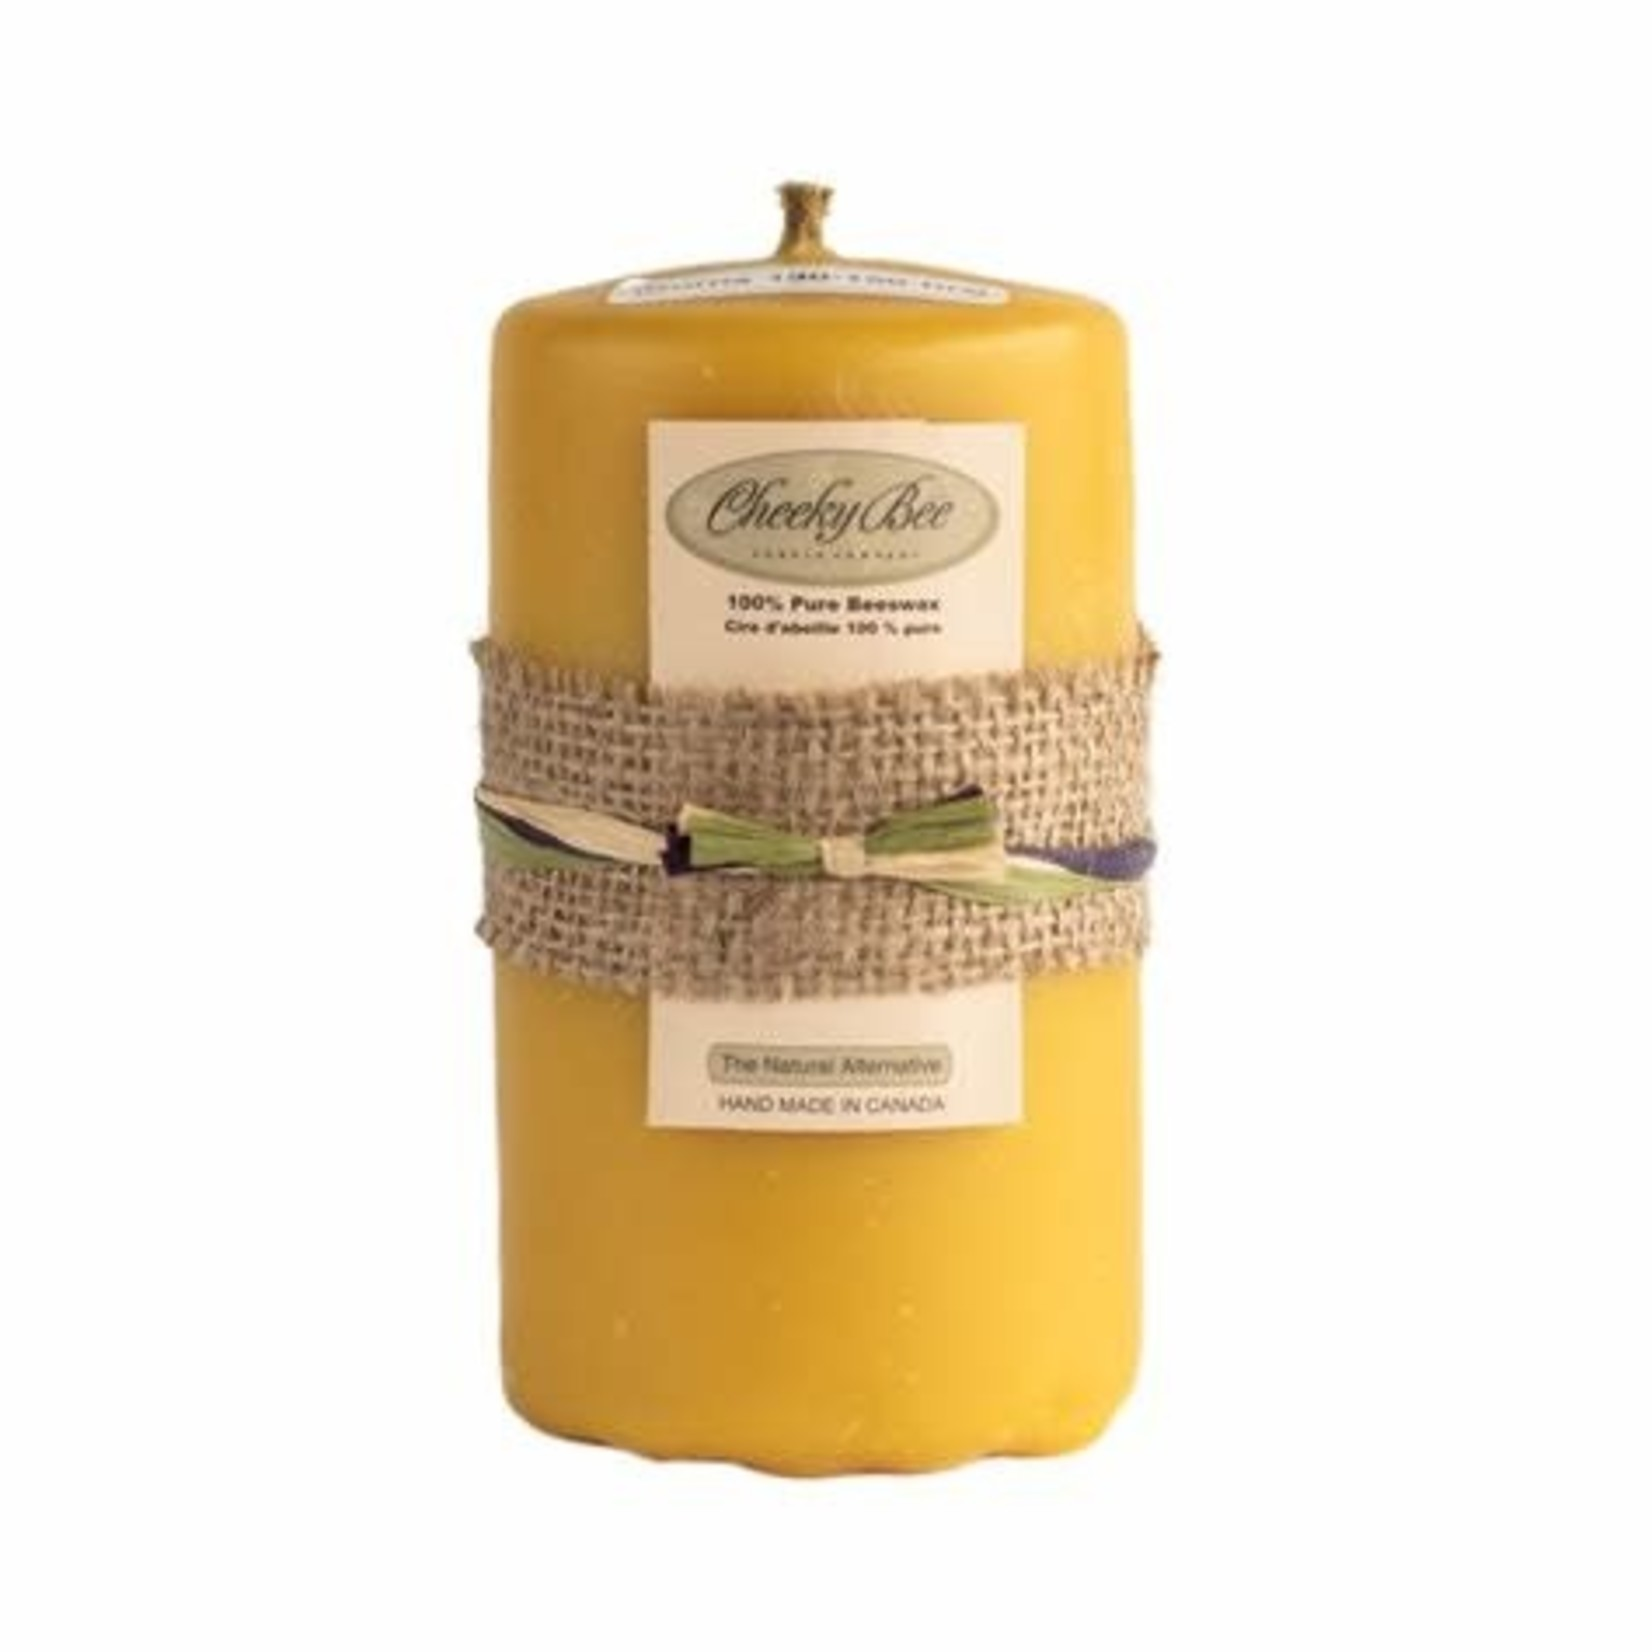 Cheeky Bee Candles Pillar Candle